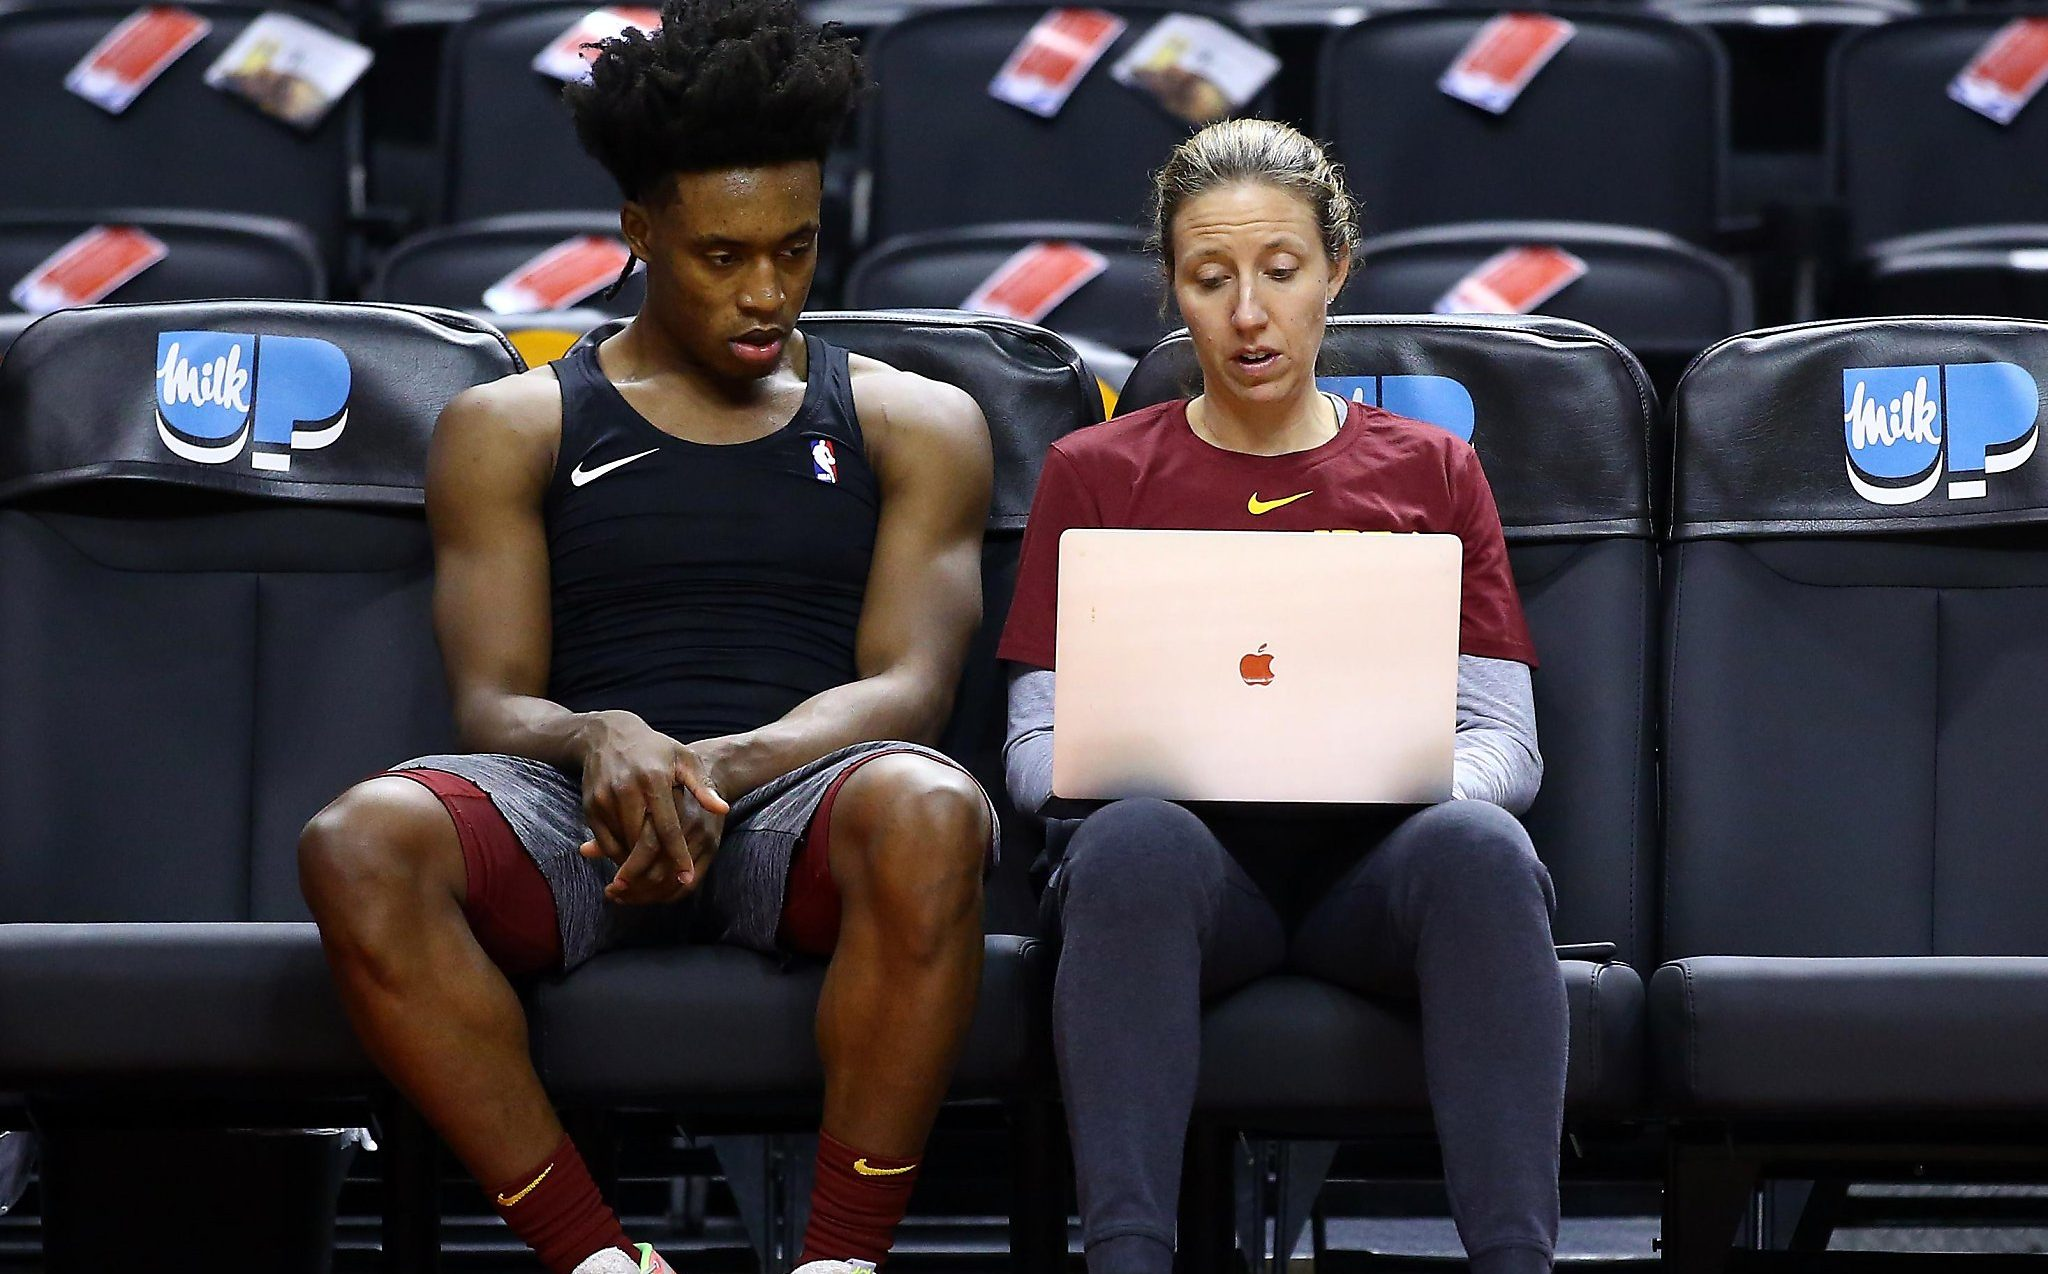 Lindsay Gottlieb and Collin Sexton